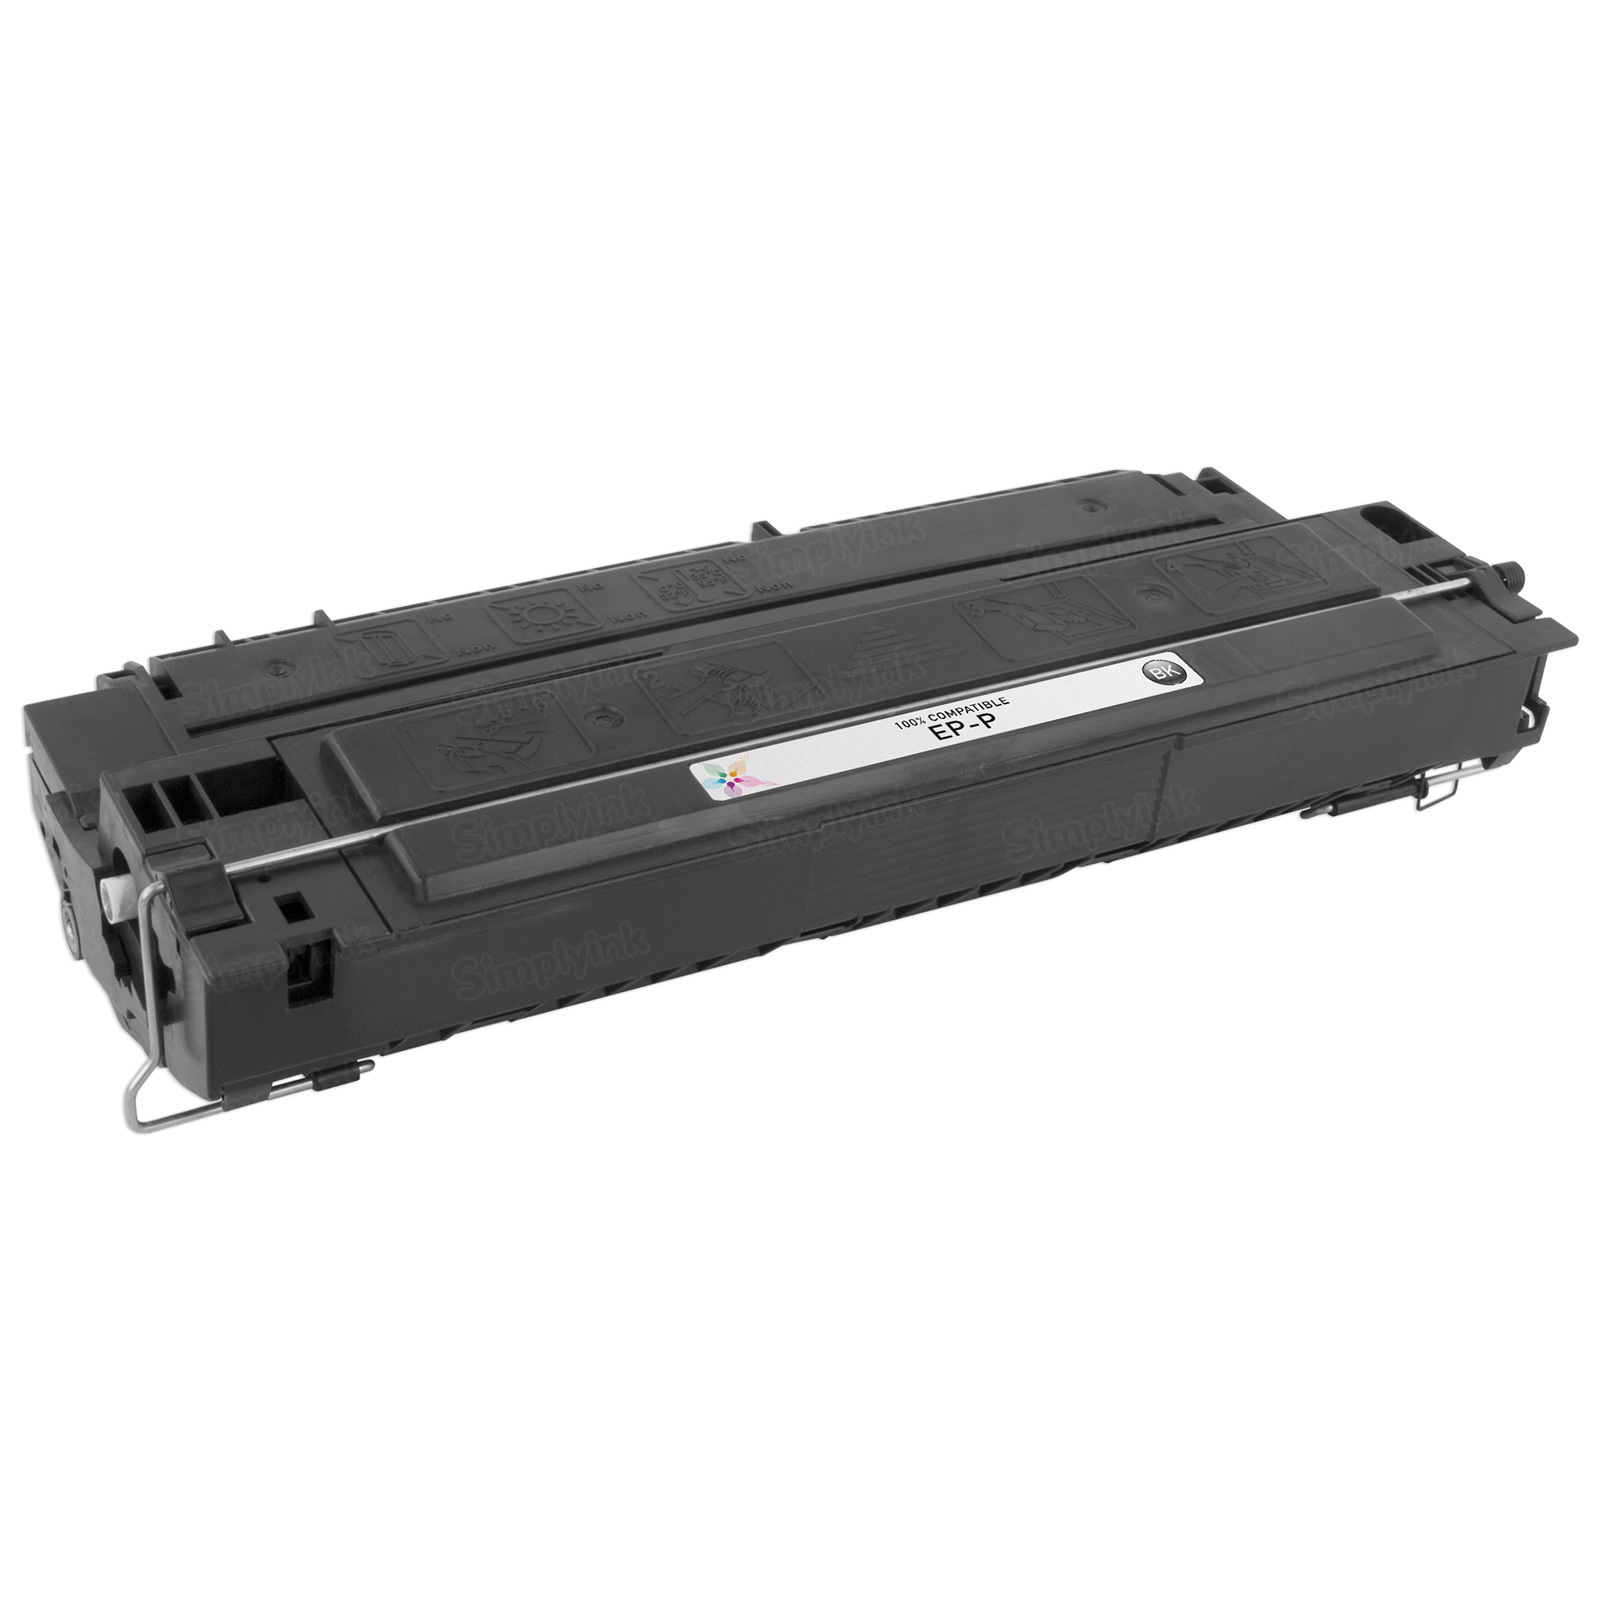 Canon EP-P) Black Toner Cartridge, Remanufactured